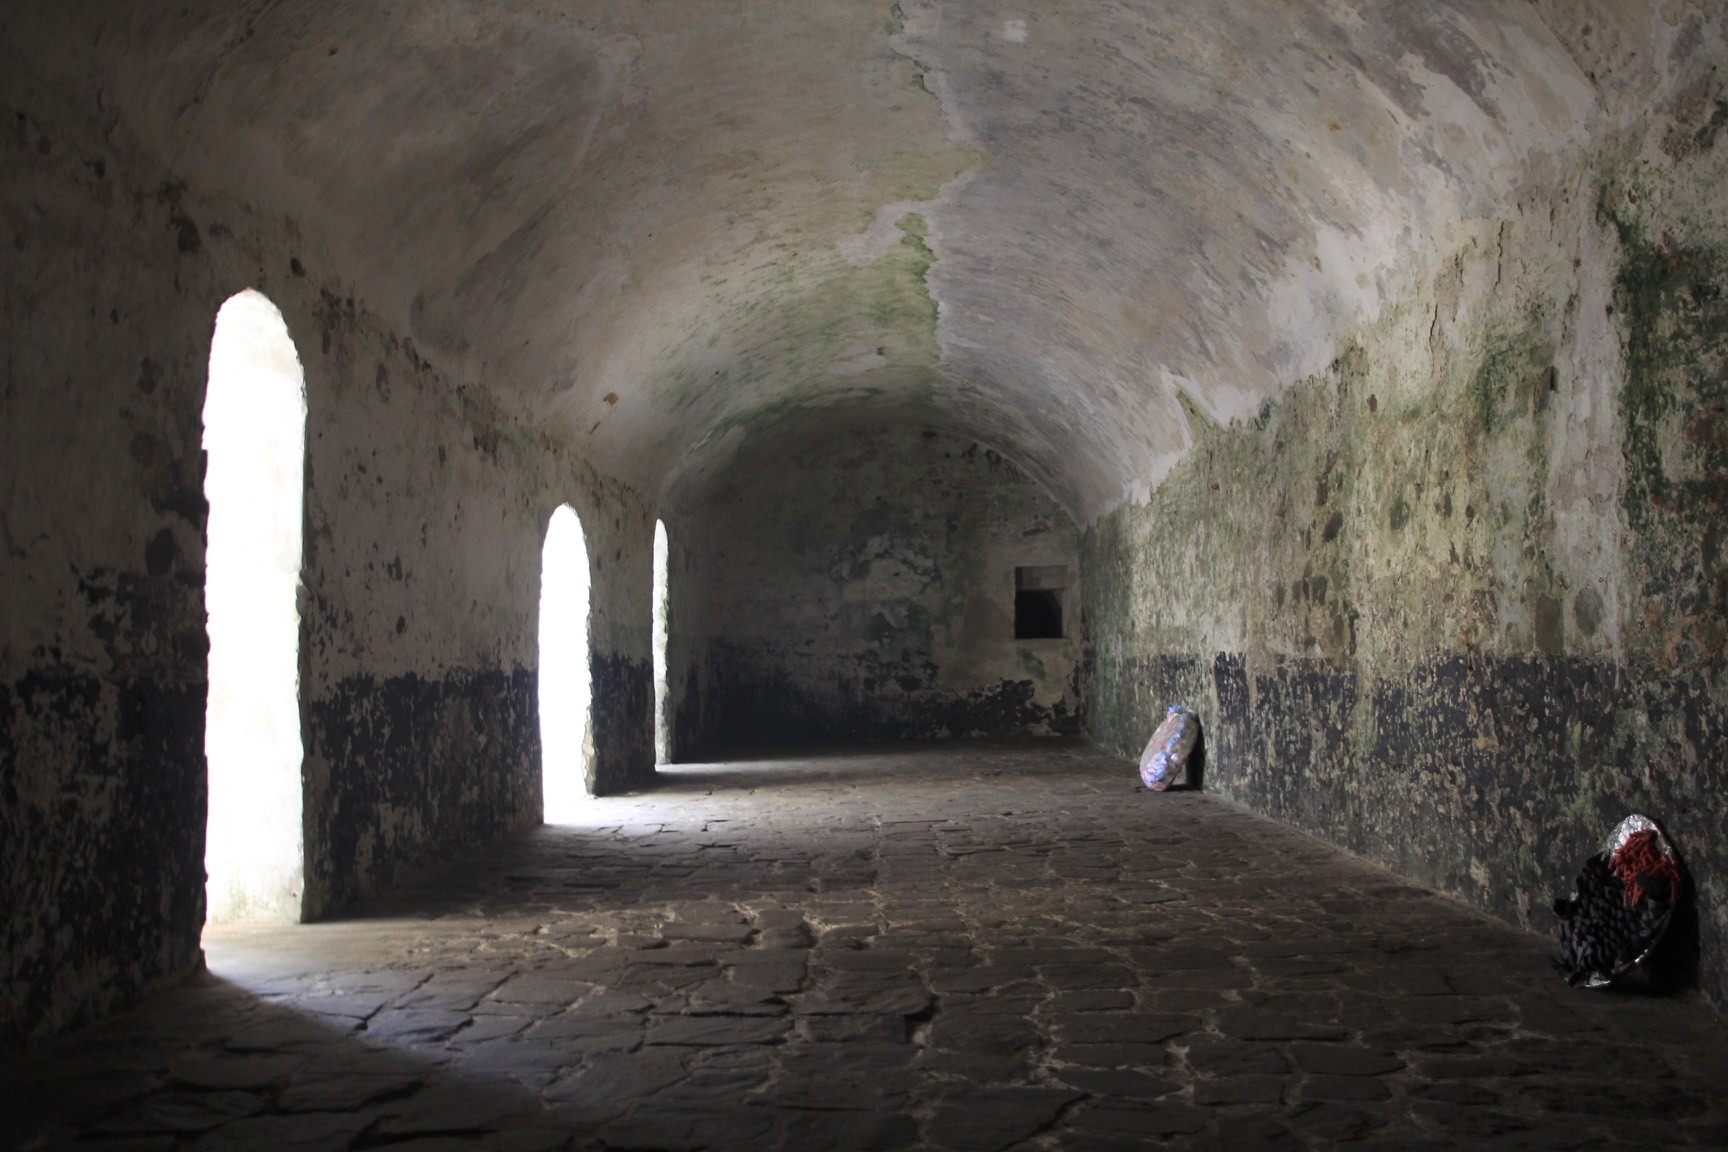 Salve holding cells in the Elmina slave castle